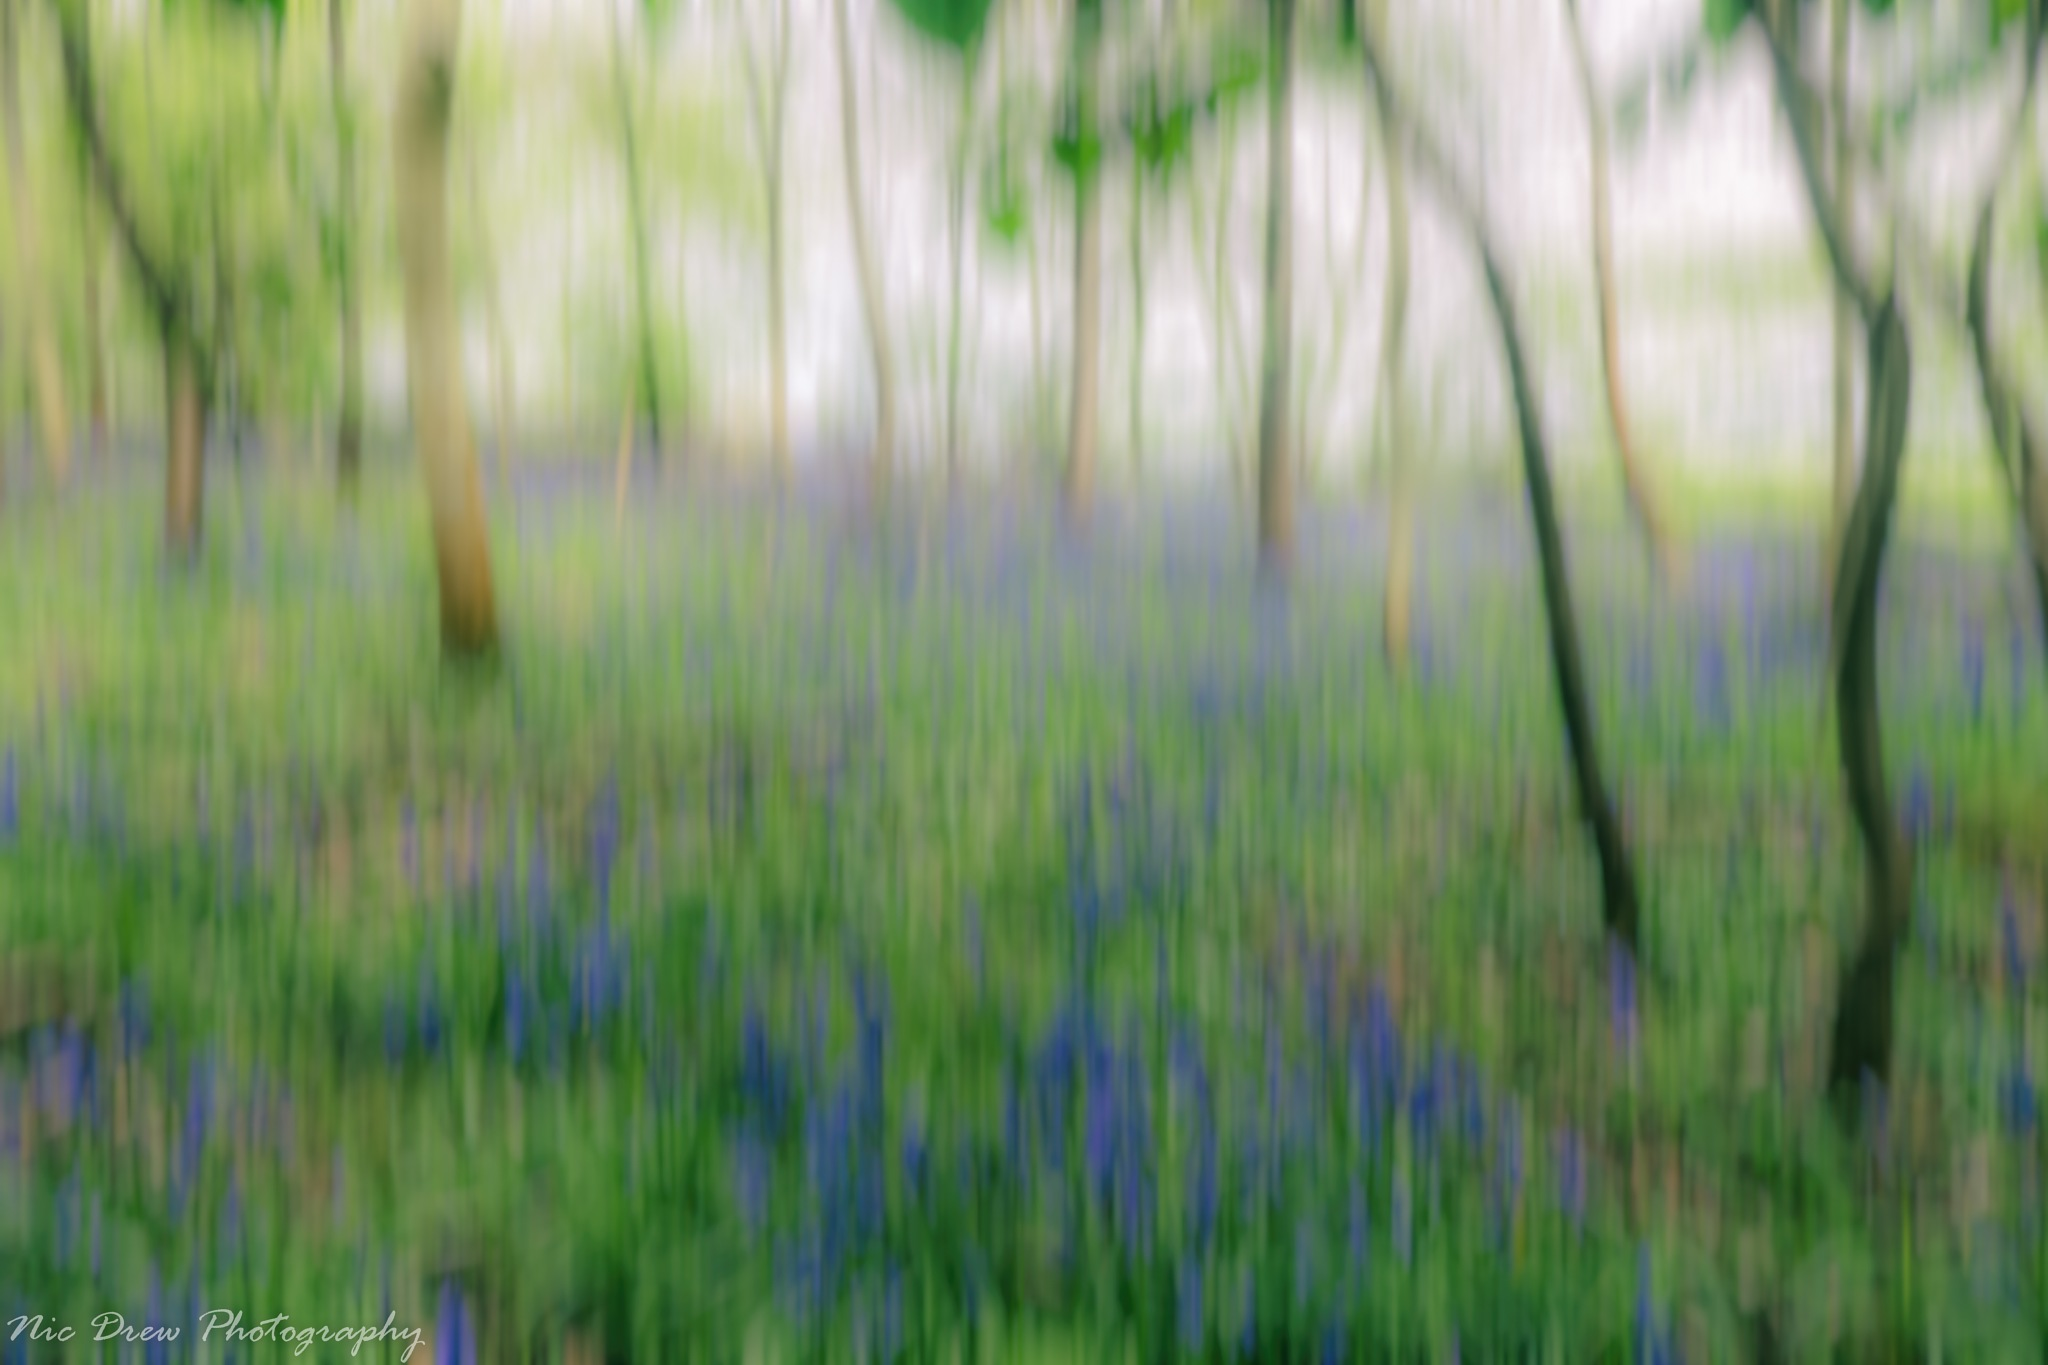 Bluebell woods by Nic Drew